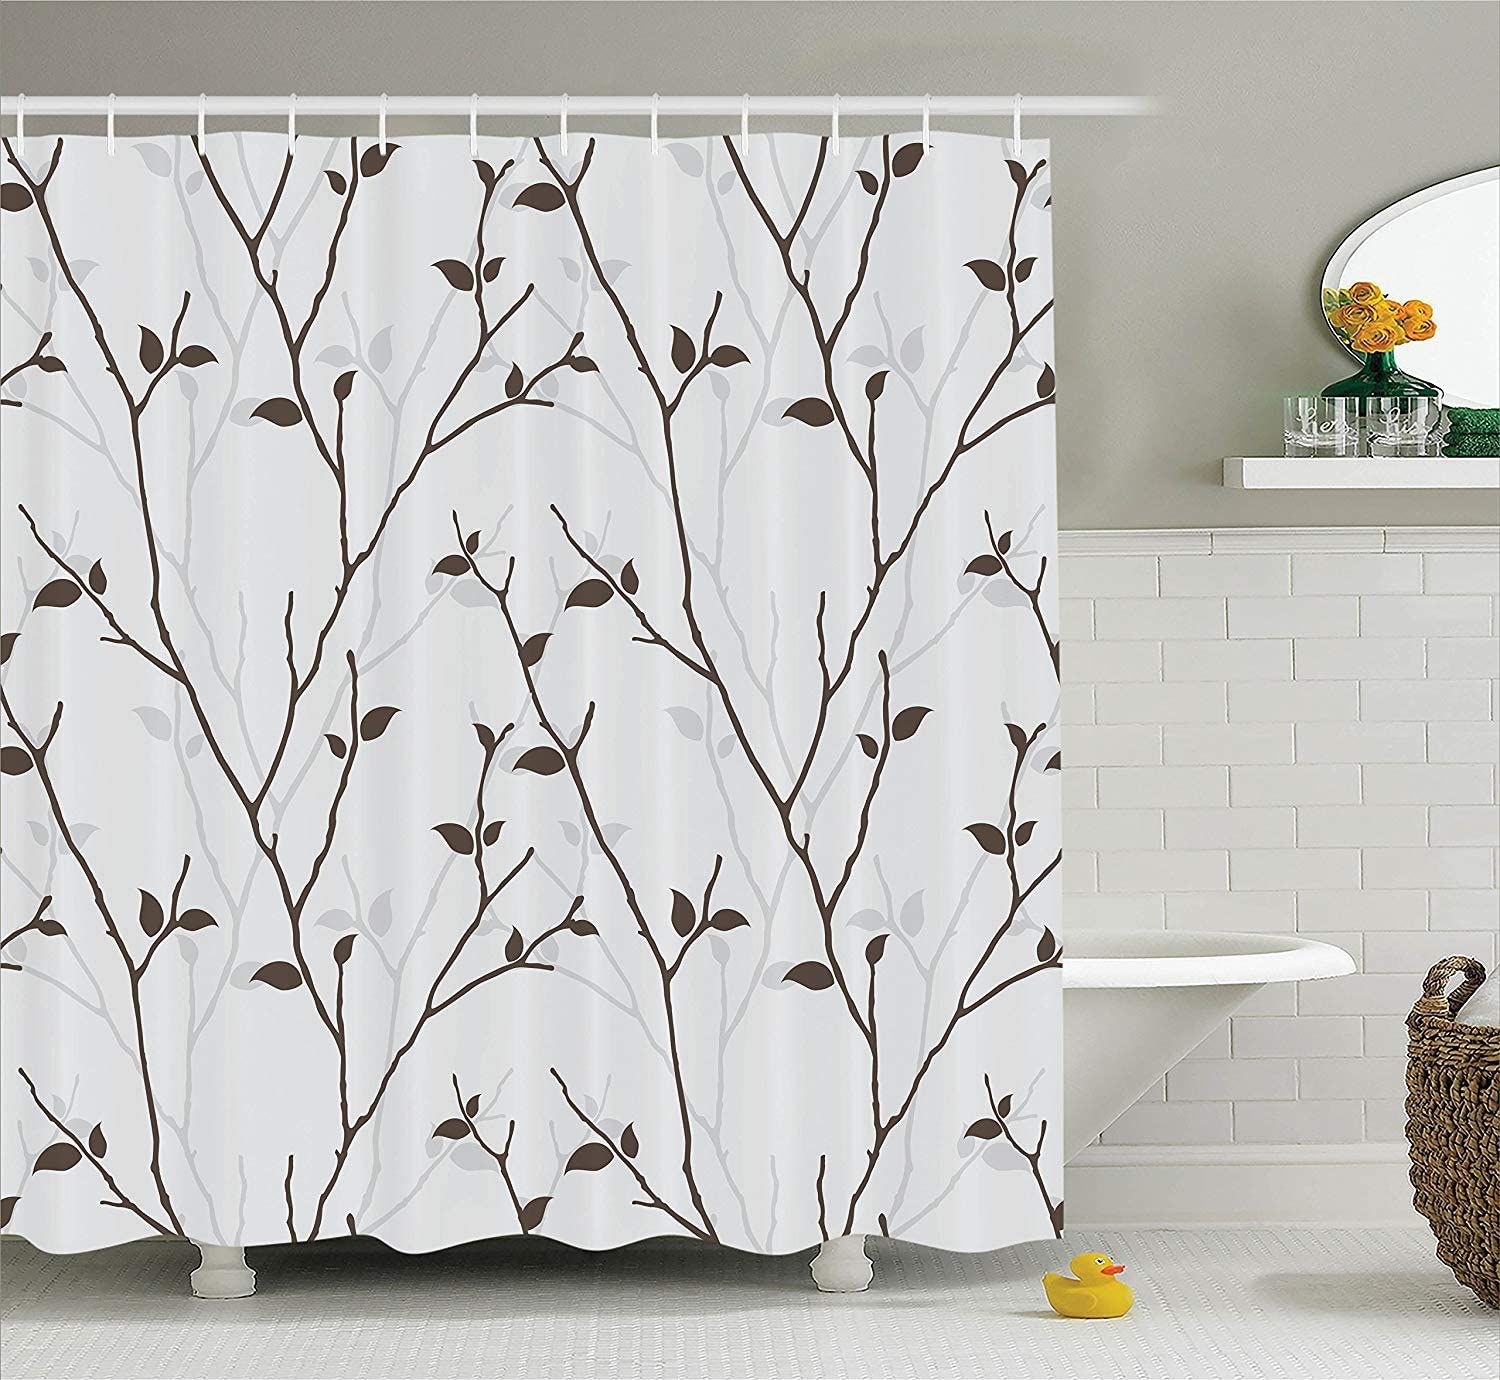 "Ambesonne Leaf Shower Curtain, Branches in The Fall Trees Stem Twig with Last Few Leaves Minimalistic Design Art, Cloth Fabric Bathroom Decor Set with Hooks, 84"" Long Extra, Grey Brown"